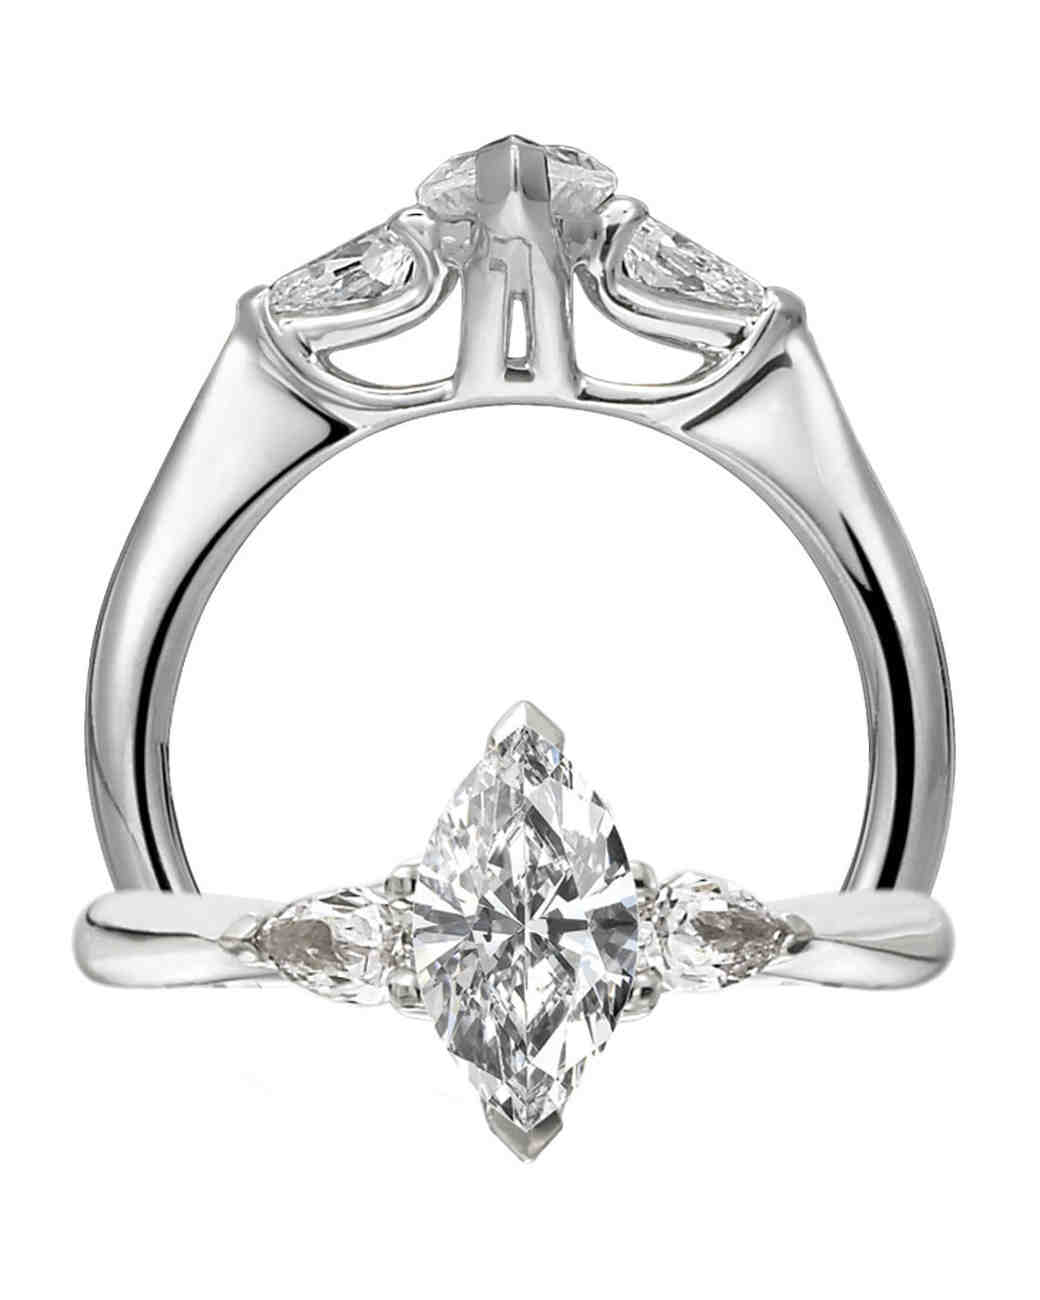 marquise cut diamond engagement rings martha stewart weddings - Marquise Wedding Rings